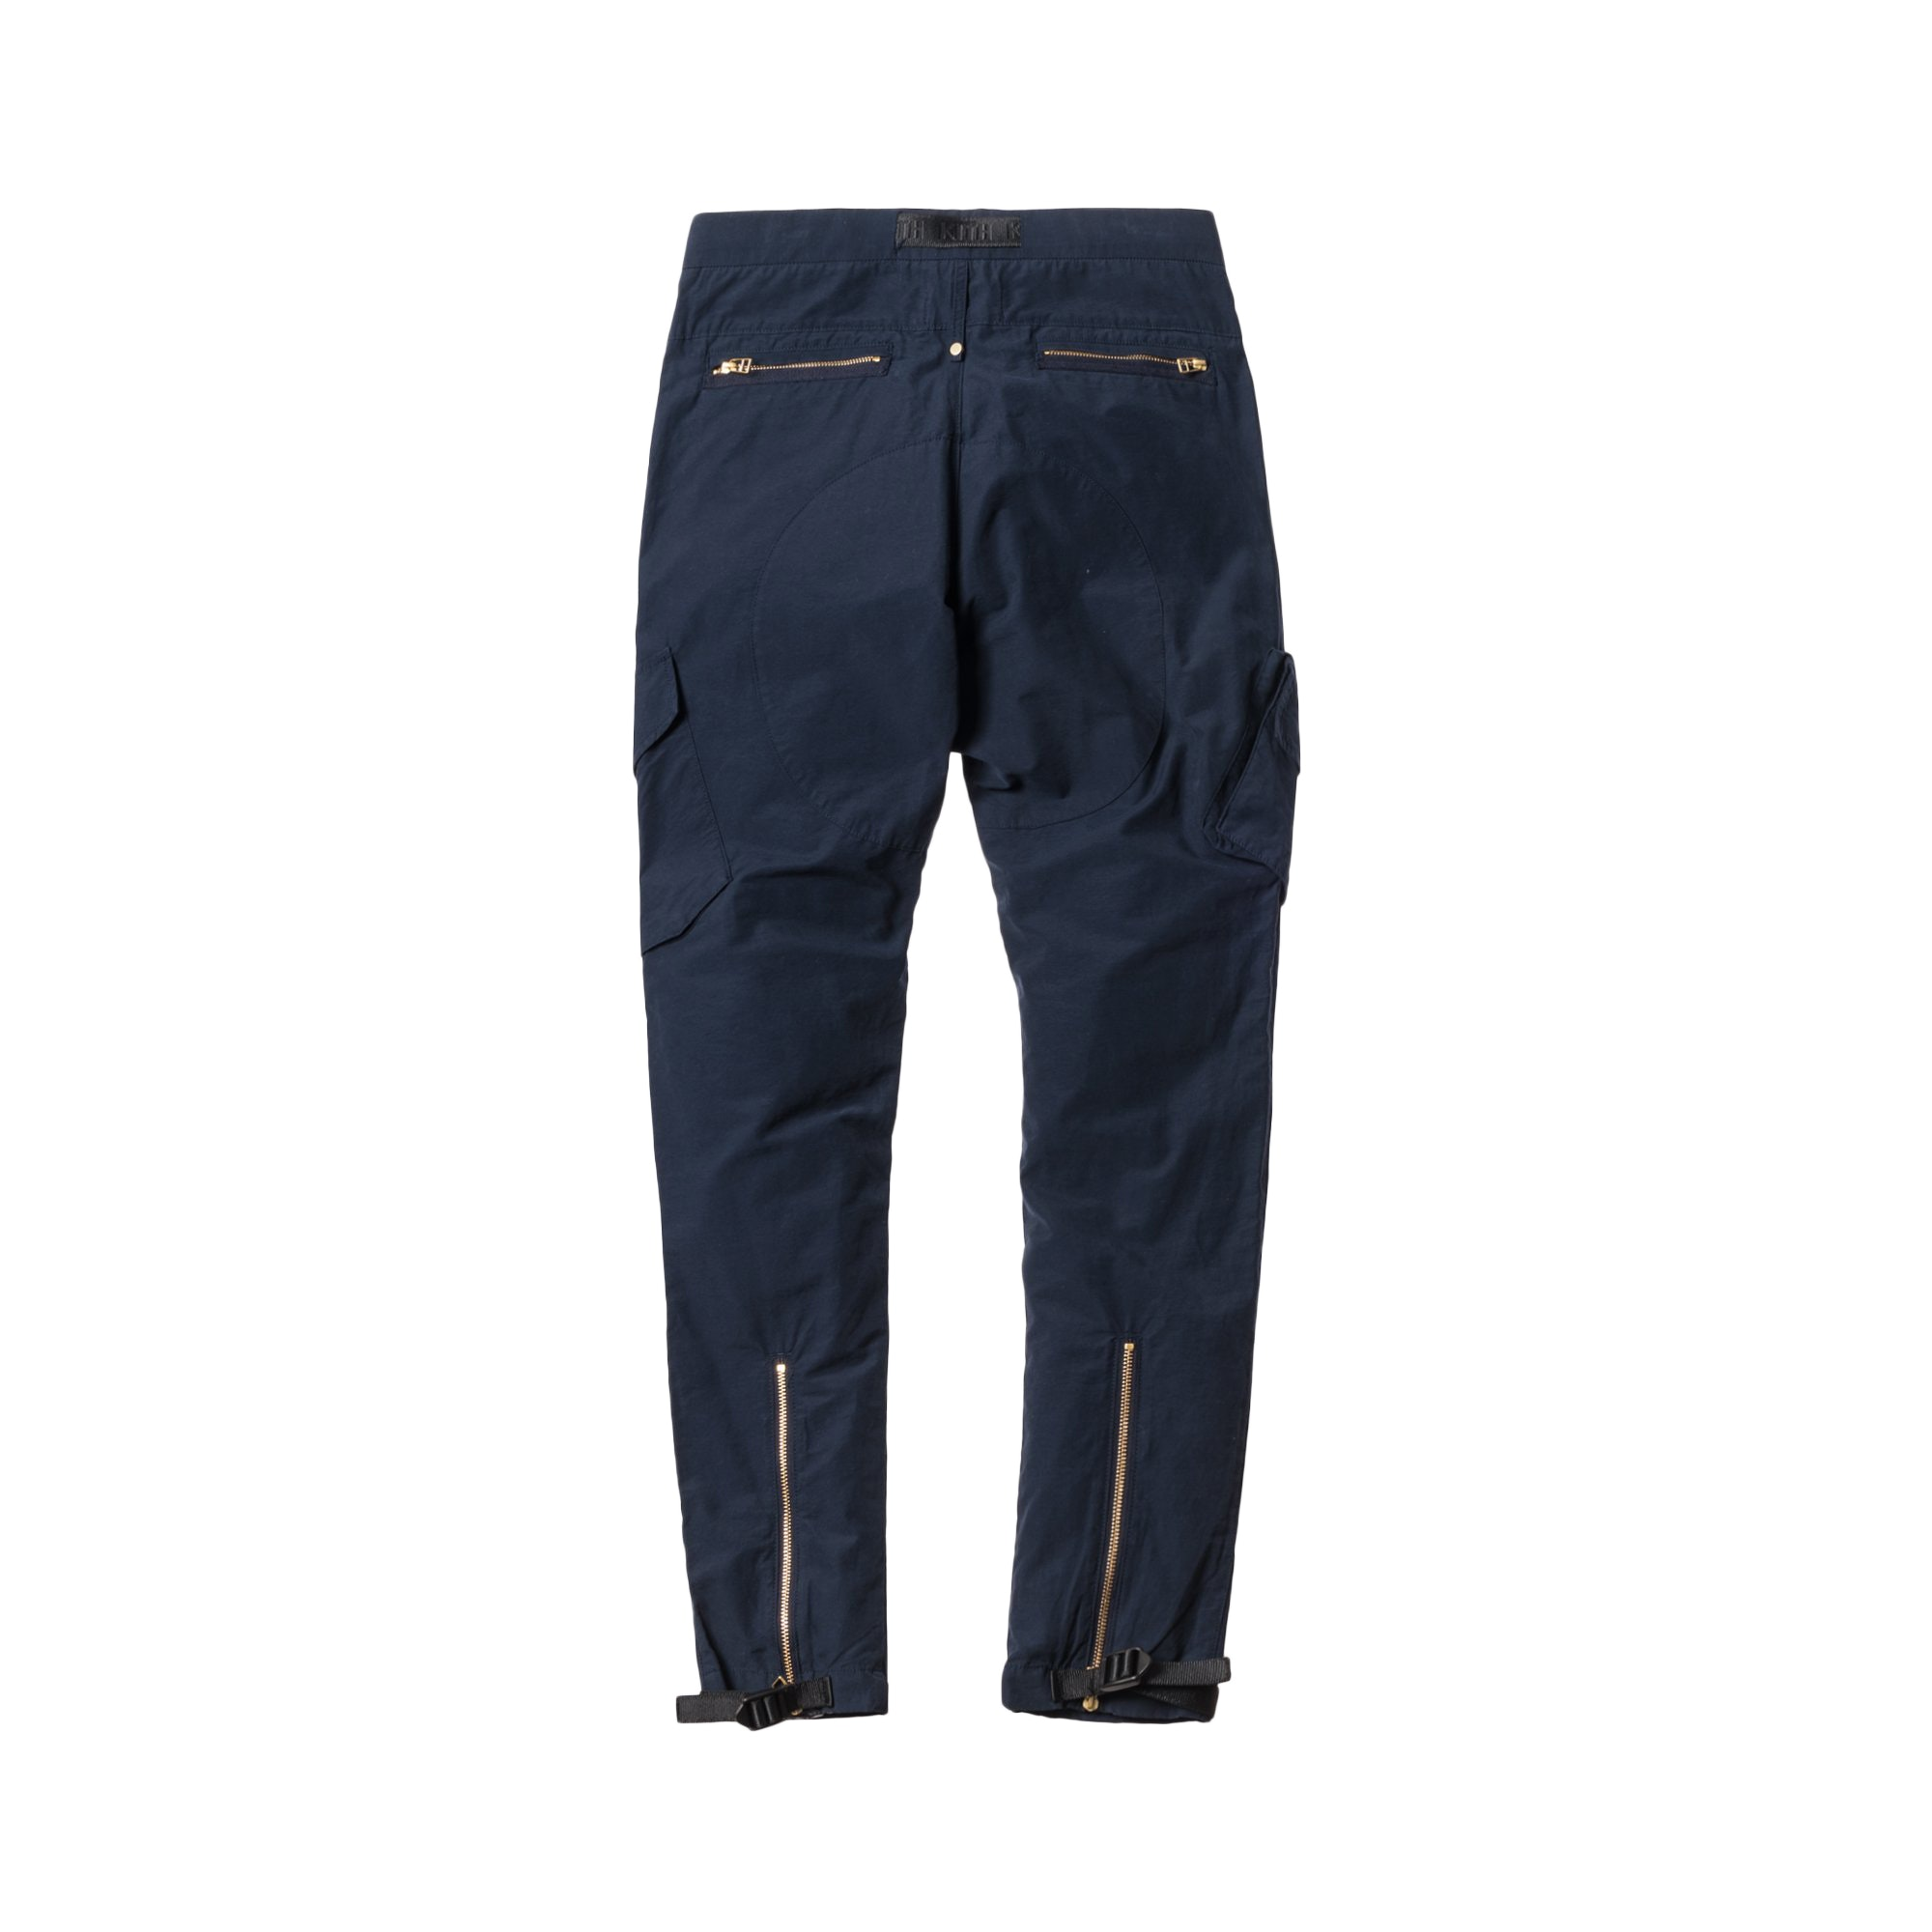 learn-islam.gq: mercer+pants. From The Community. Amazon Try Prime All these skinny fit color block track pants with star print side stripes. Mercer Bears Platinum Logo Men's Sweatpants Black. Currently unavailable. BLEECKER & MERCER Side Stripe Track Pants. by BLEECKER & MERCER.